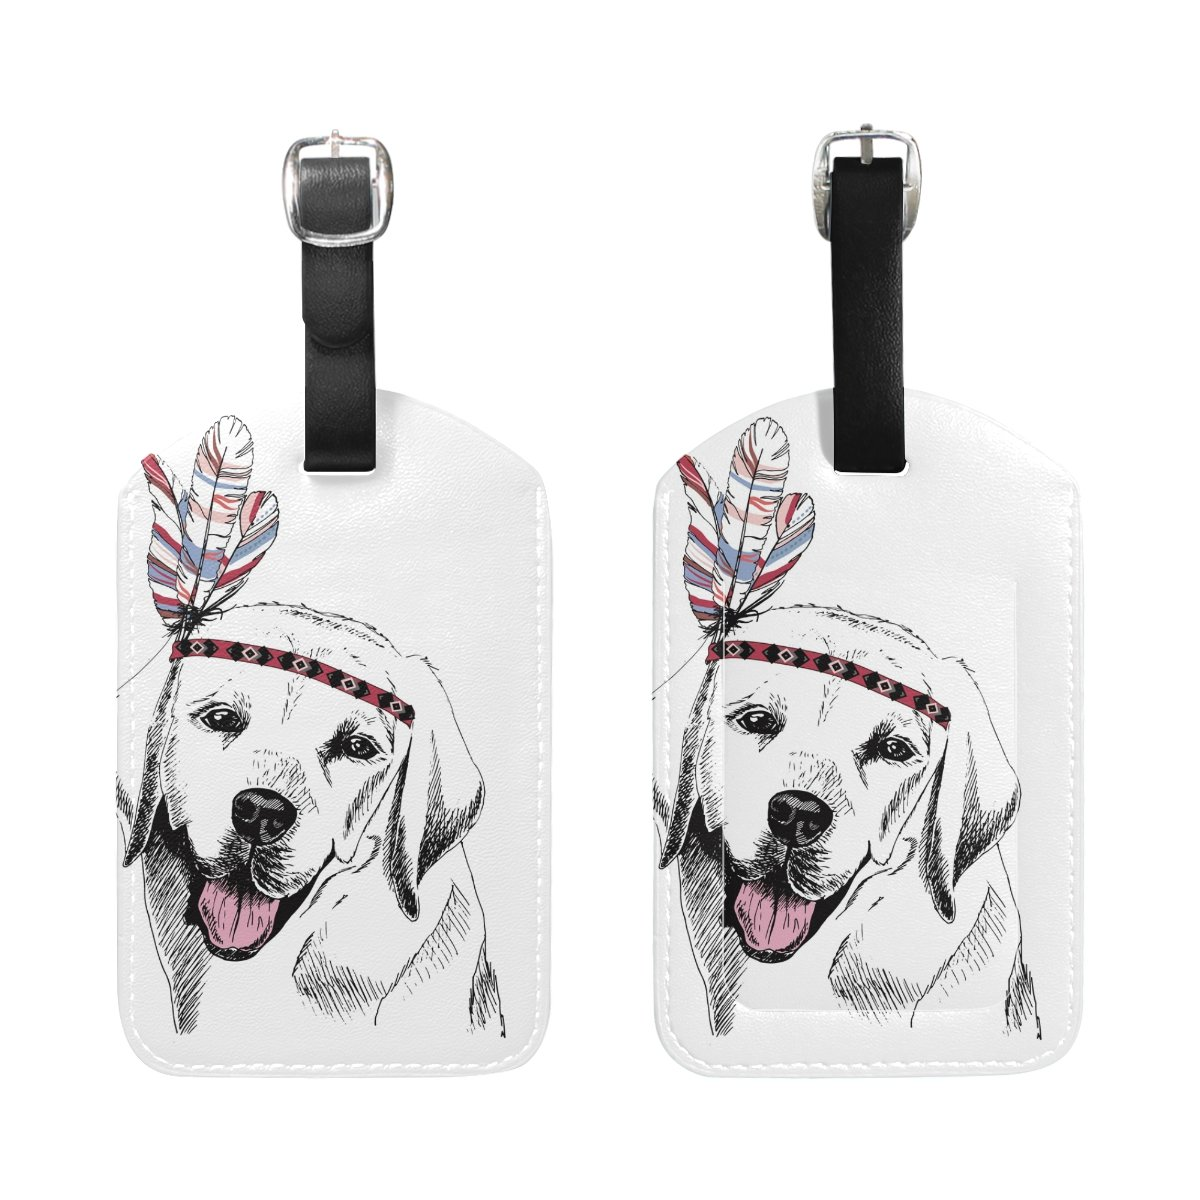 1Pcs Saobao Travel Luggage Tag White Dog PU Leather Baggage Suitcase Travel ID Bag Tag